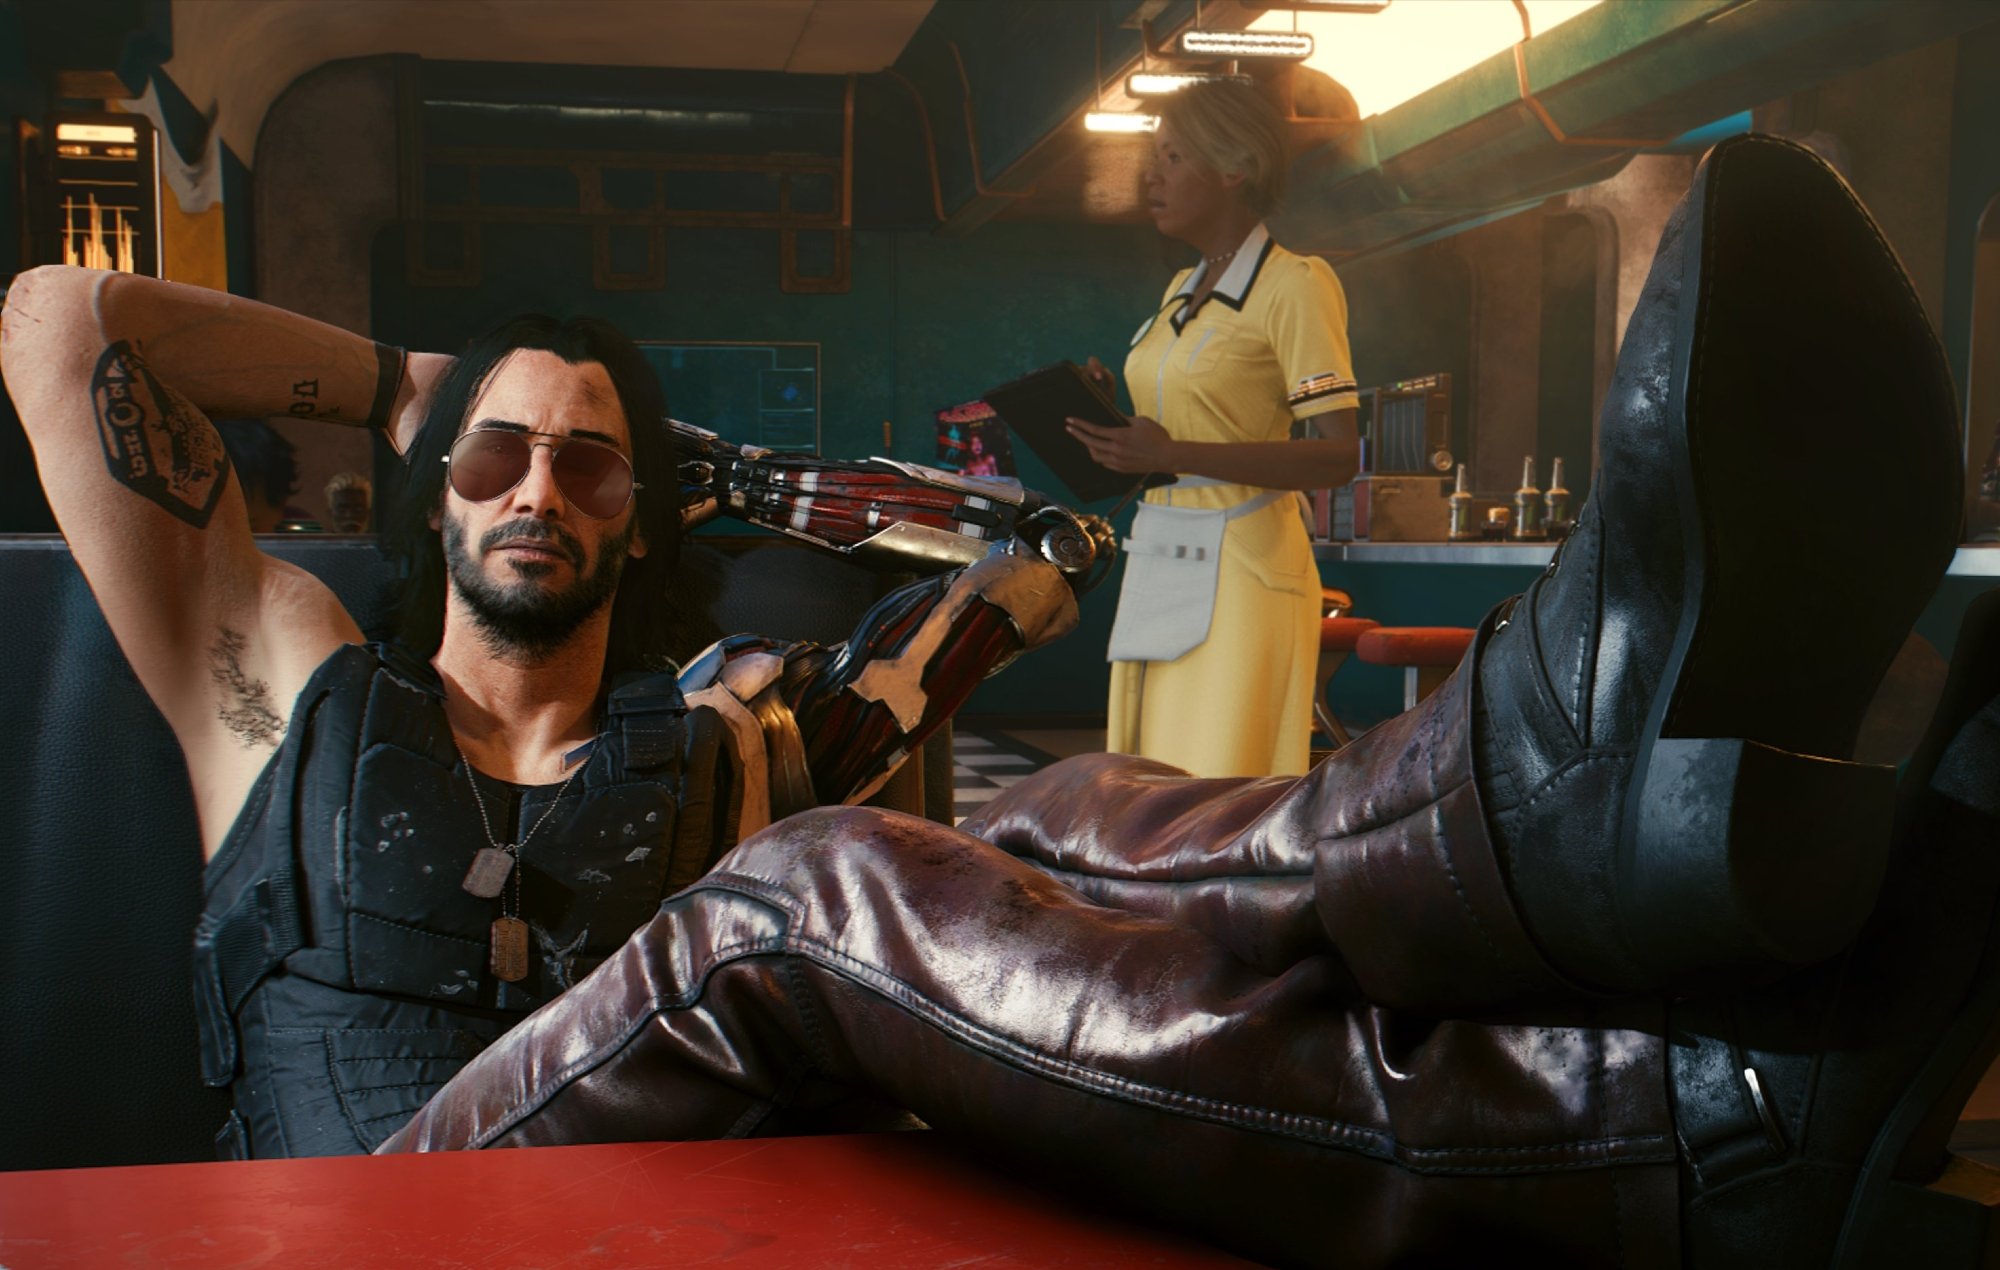 cyberpunk 2077 metacritic